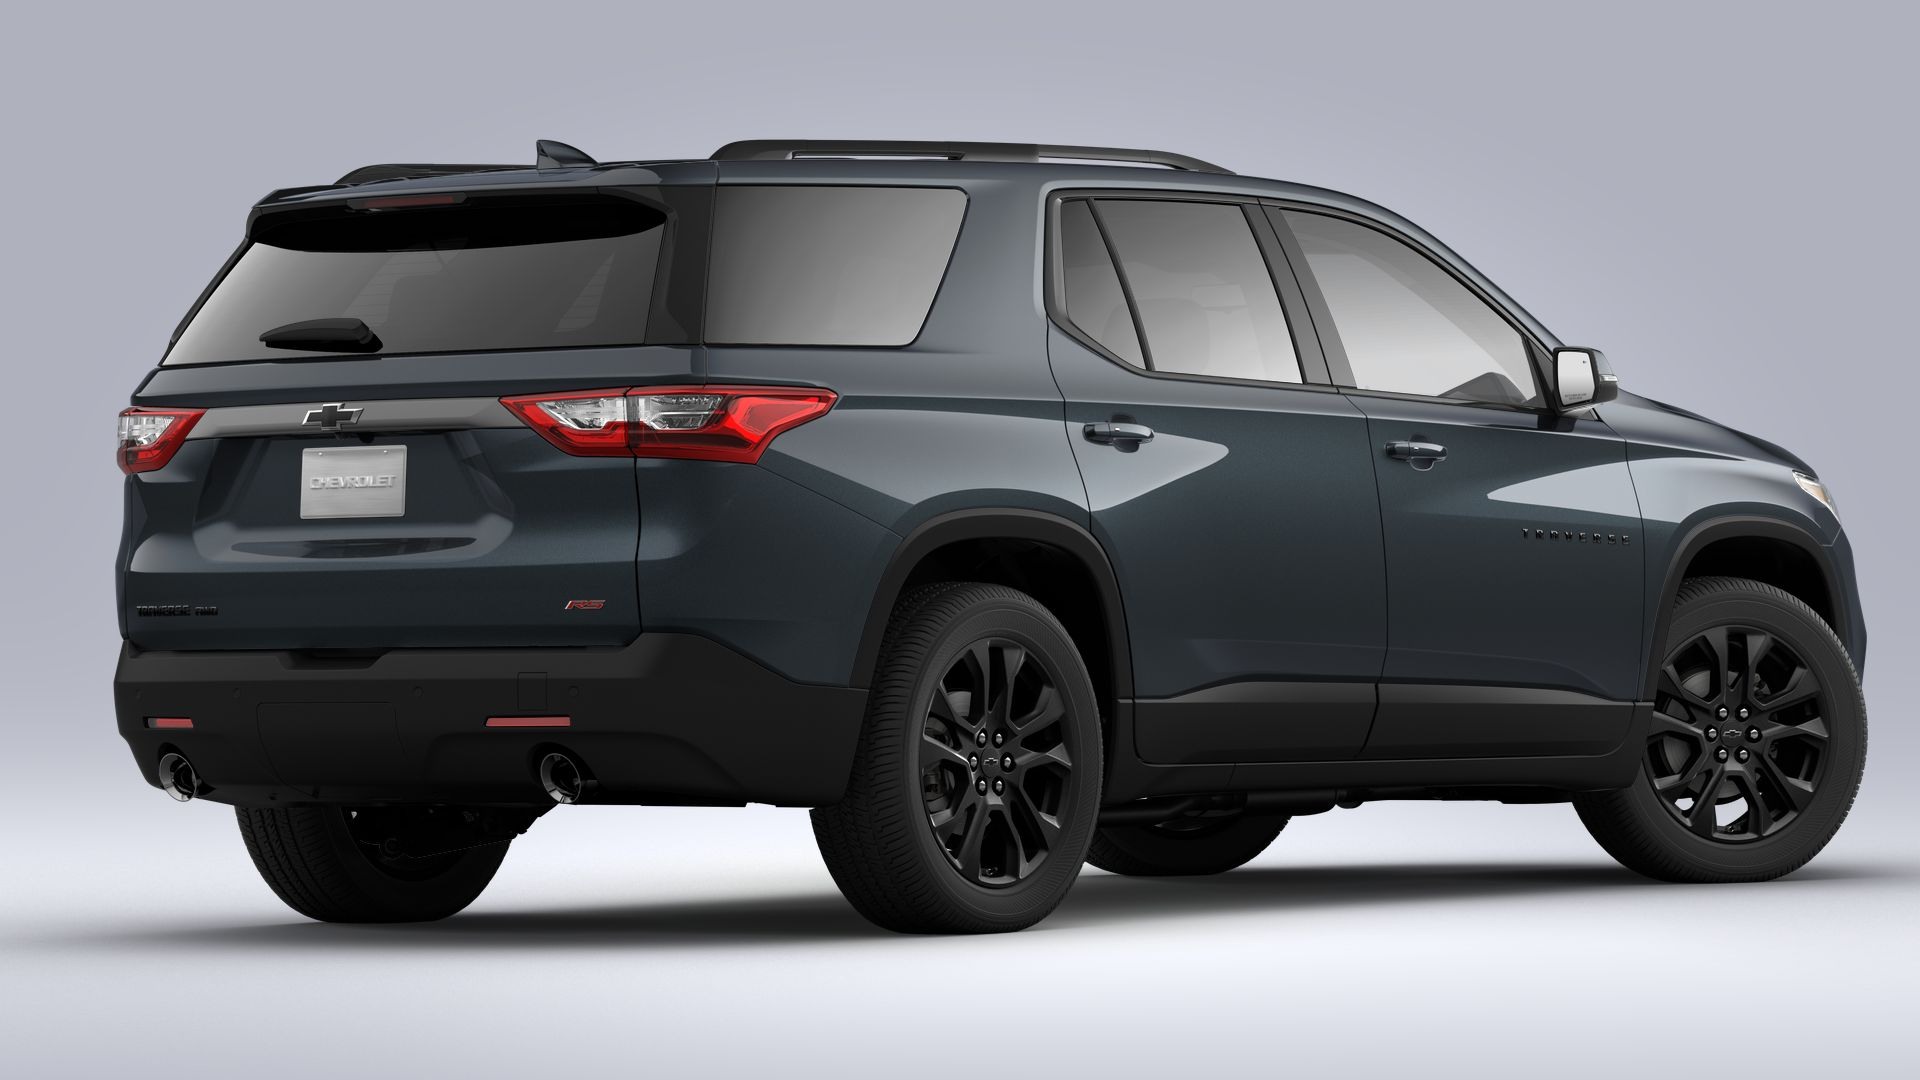 new 2021 chevrolet traverse rs for sale near boston, ma at